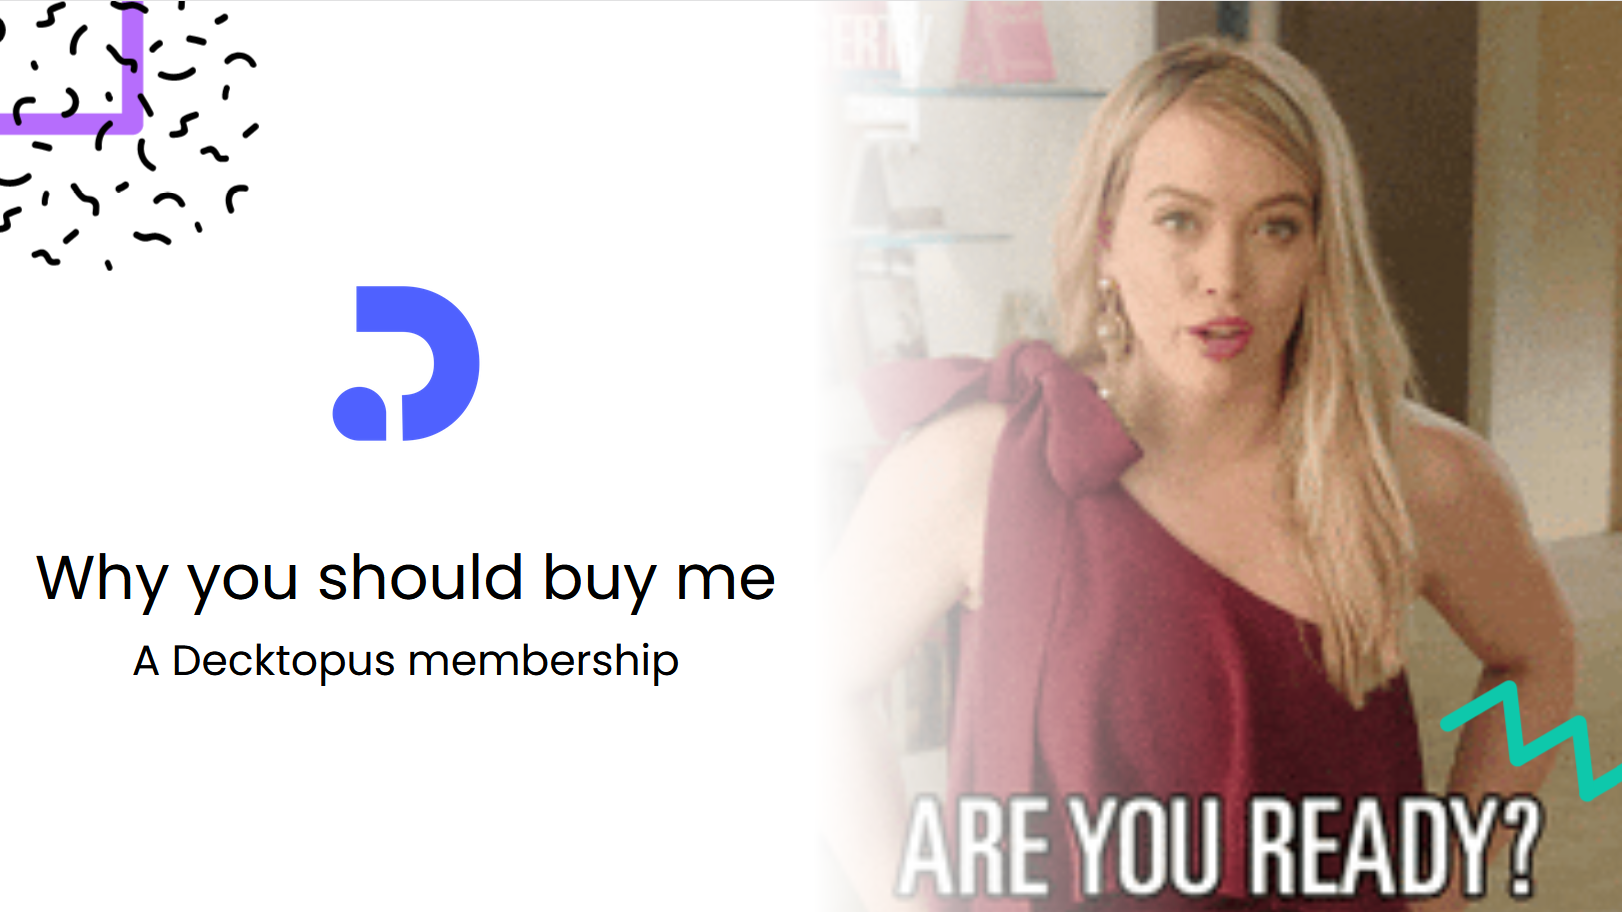 Why does your parent need to buy a Decktopus membership? What are the benefits and unique features of the product that make it a must to have it? Deliver on these details with our convincing the parent template to score the gift of your dreams.